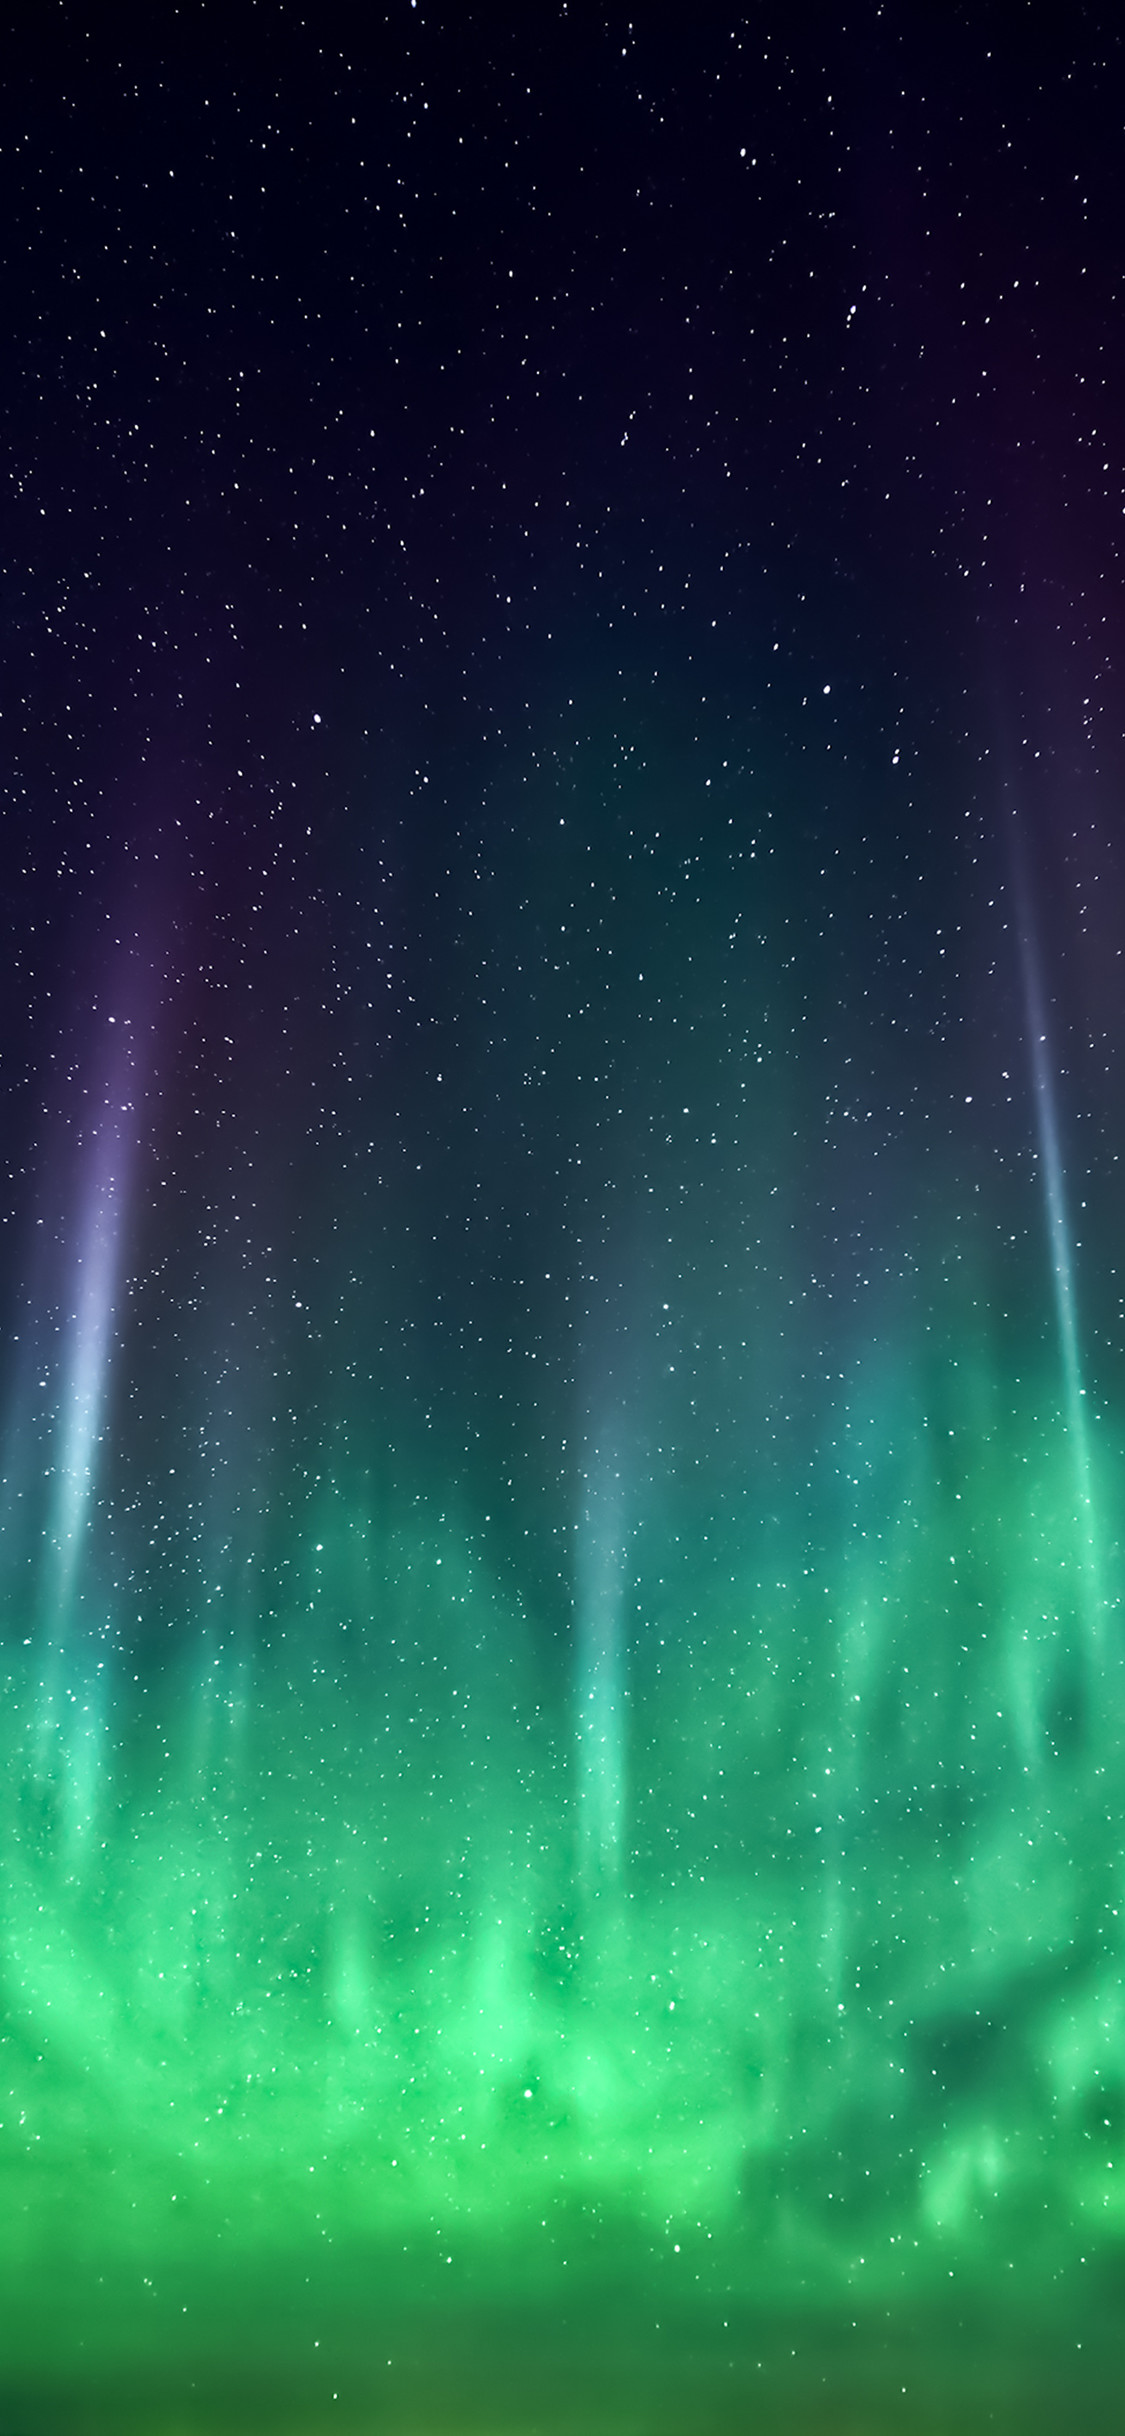 IOS 8 Stock Wallpapers (52+ Images